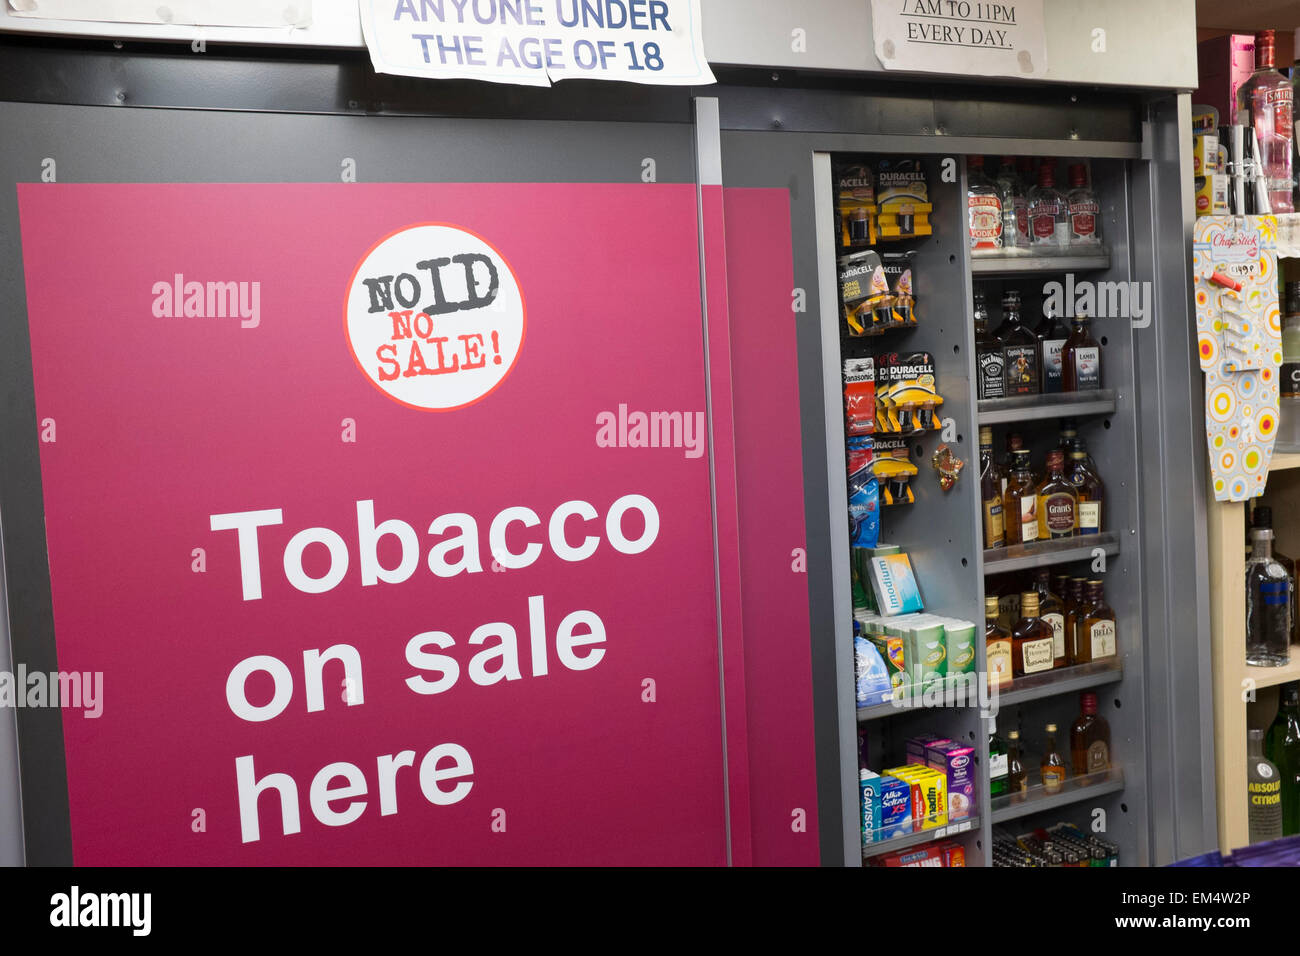 Price of cigarettes Marlboro and tobacco in Houston